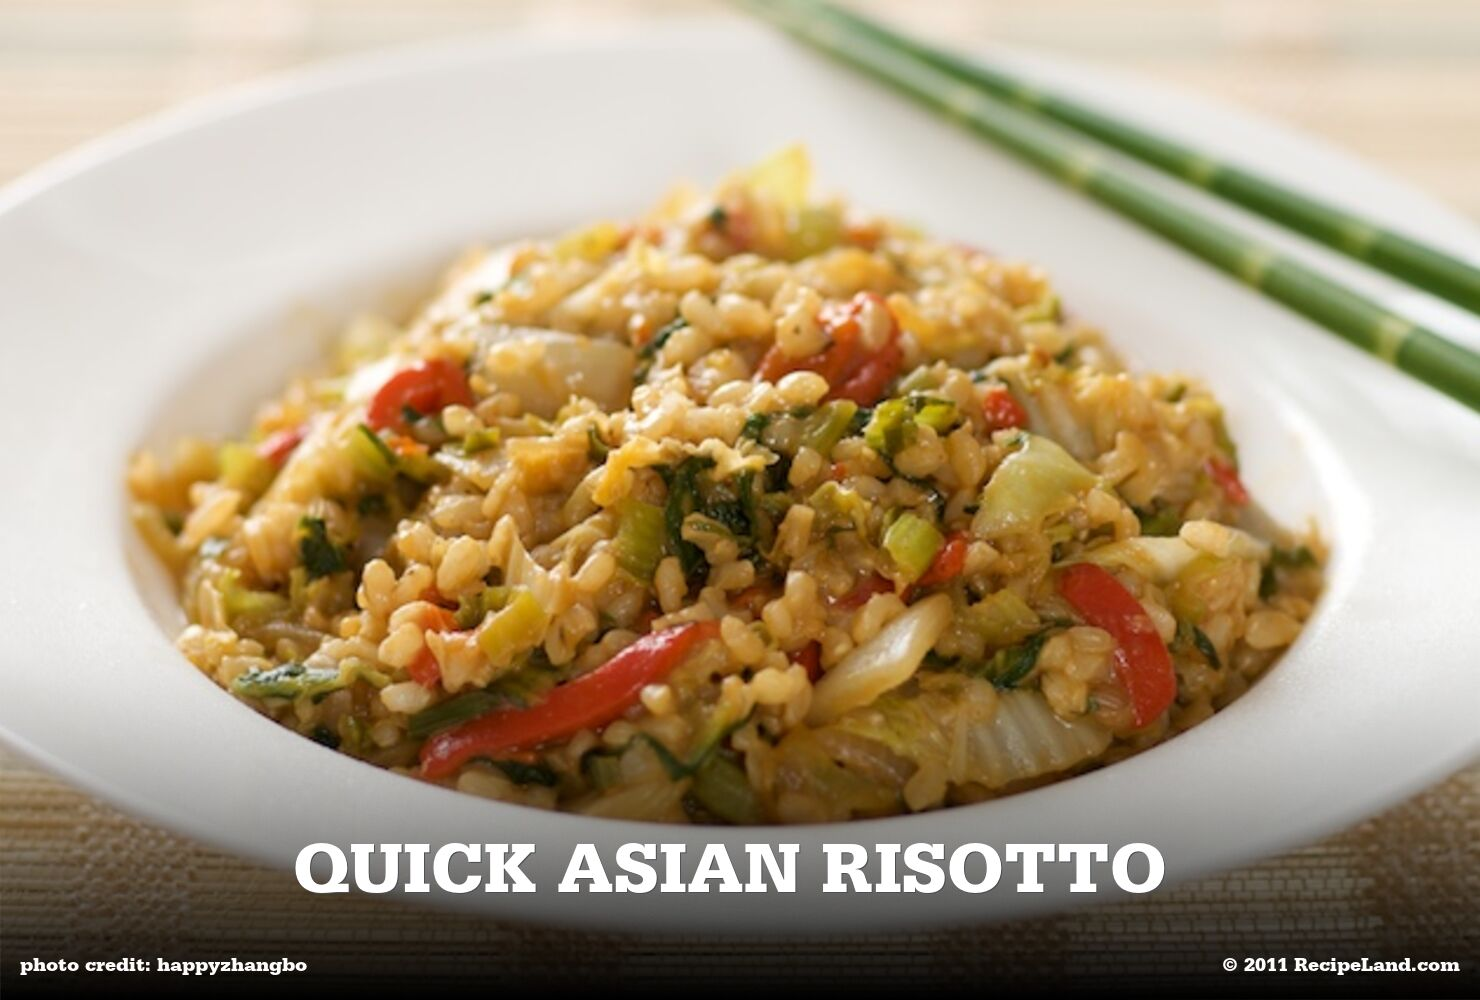 Quick Asian Risotto